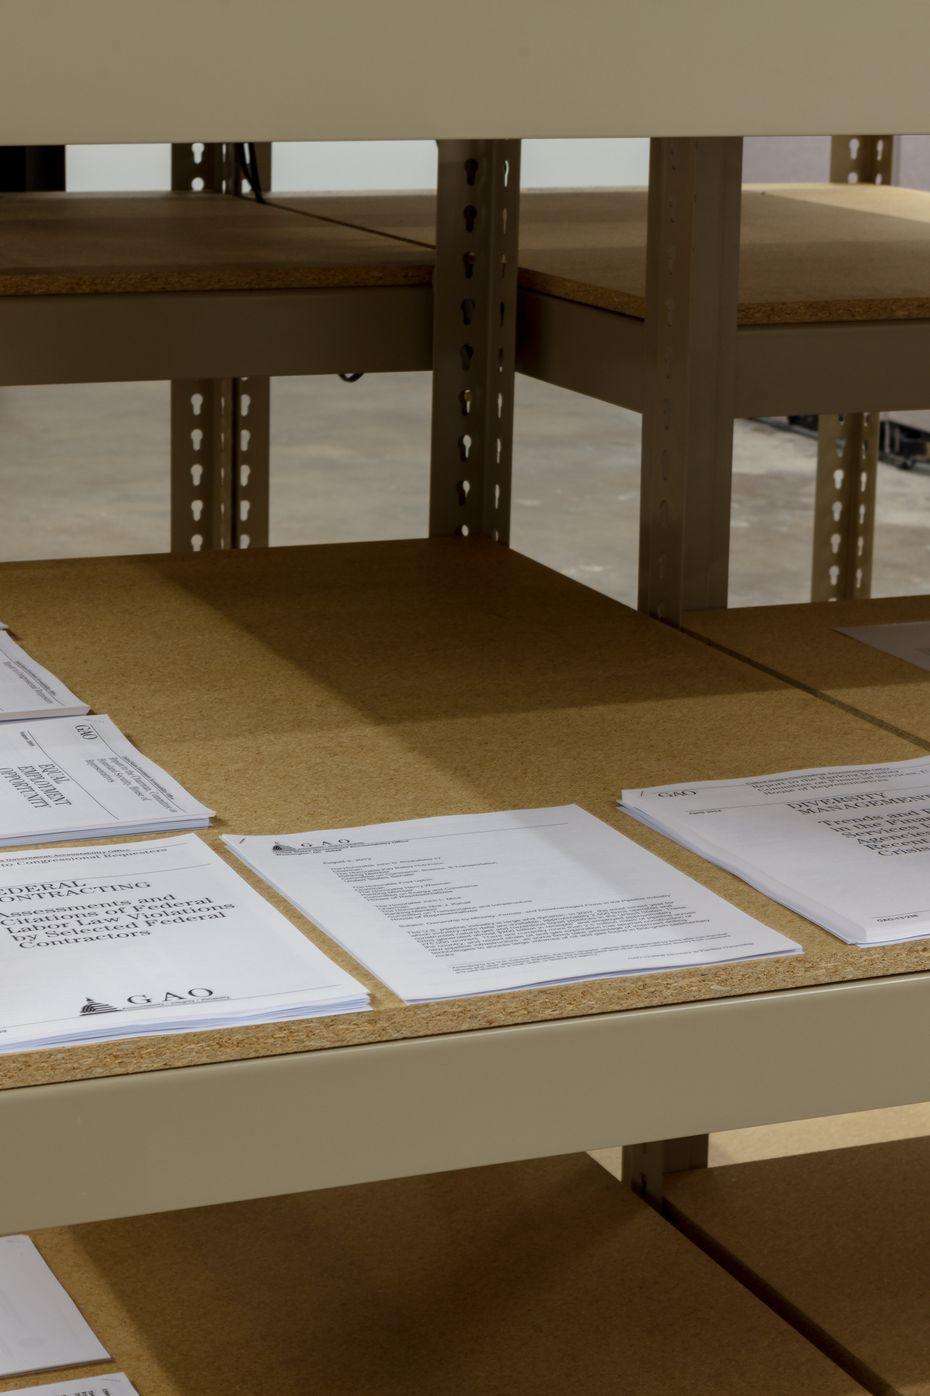 Printouts of various U.S. government reports are included in the exhibition.